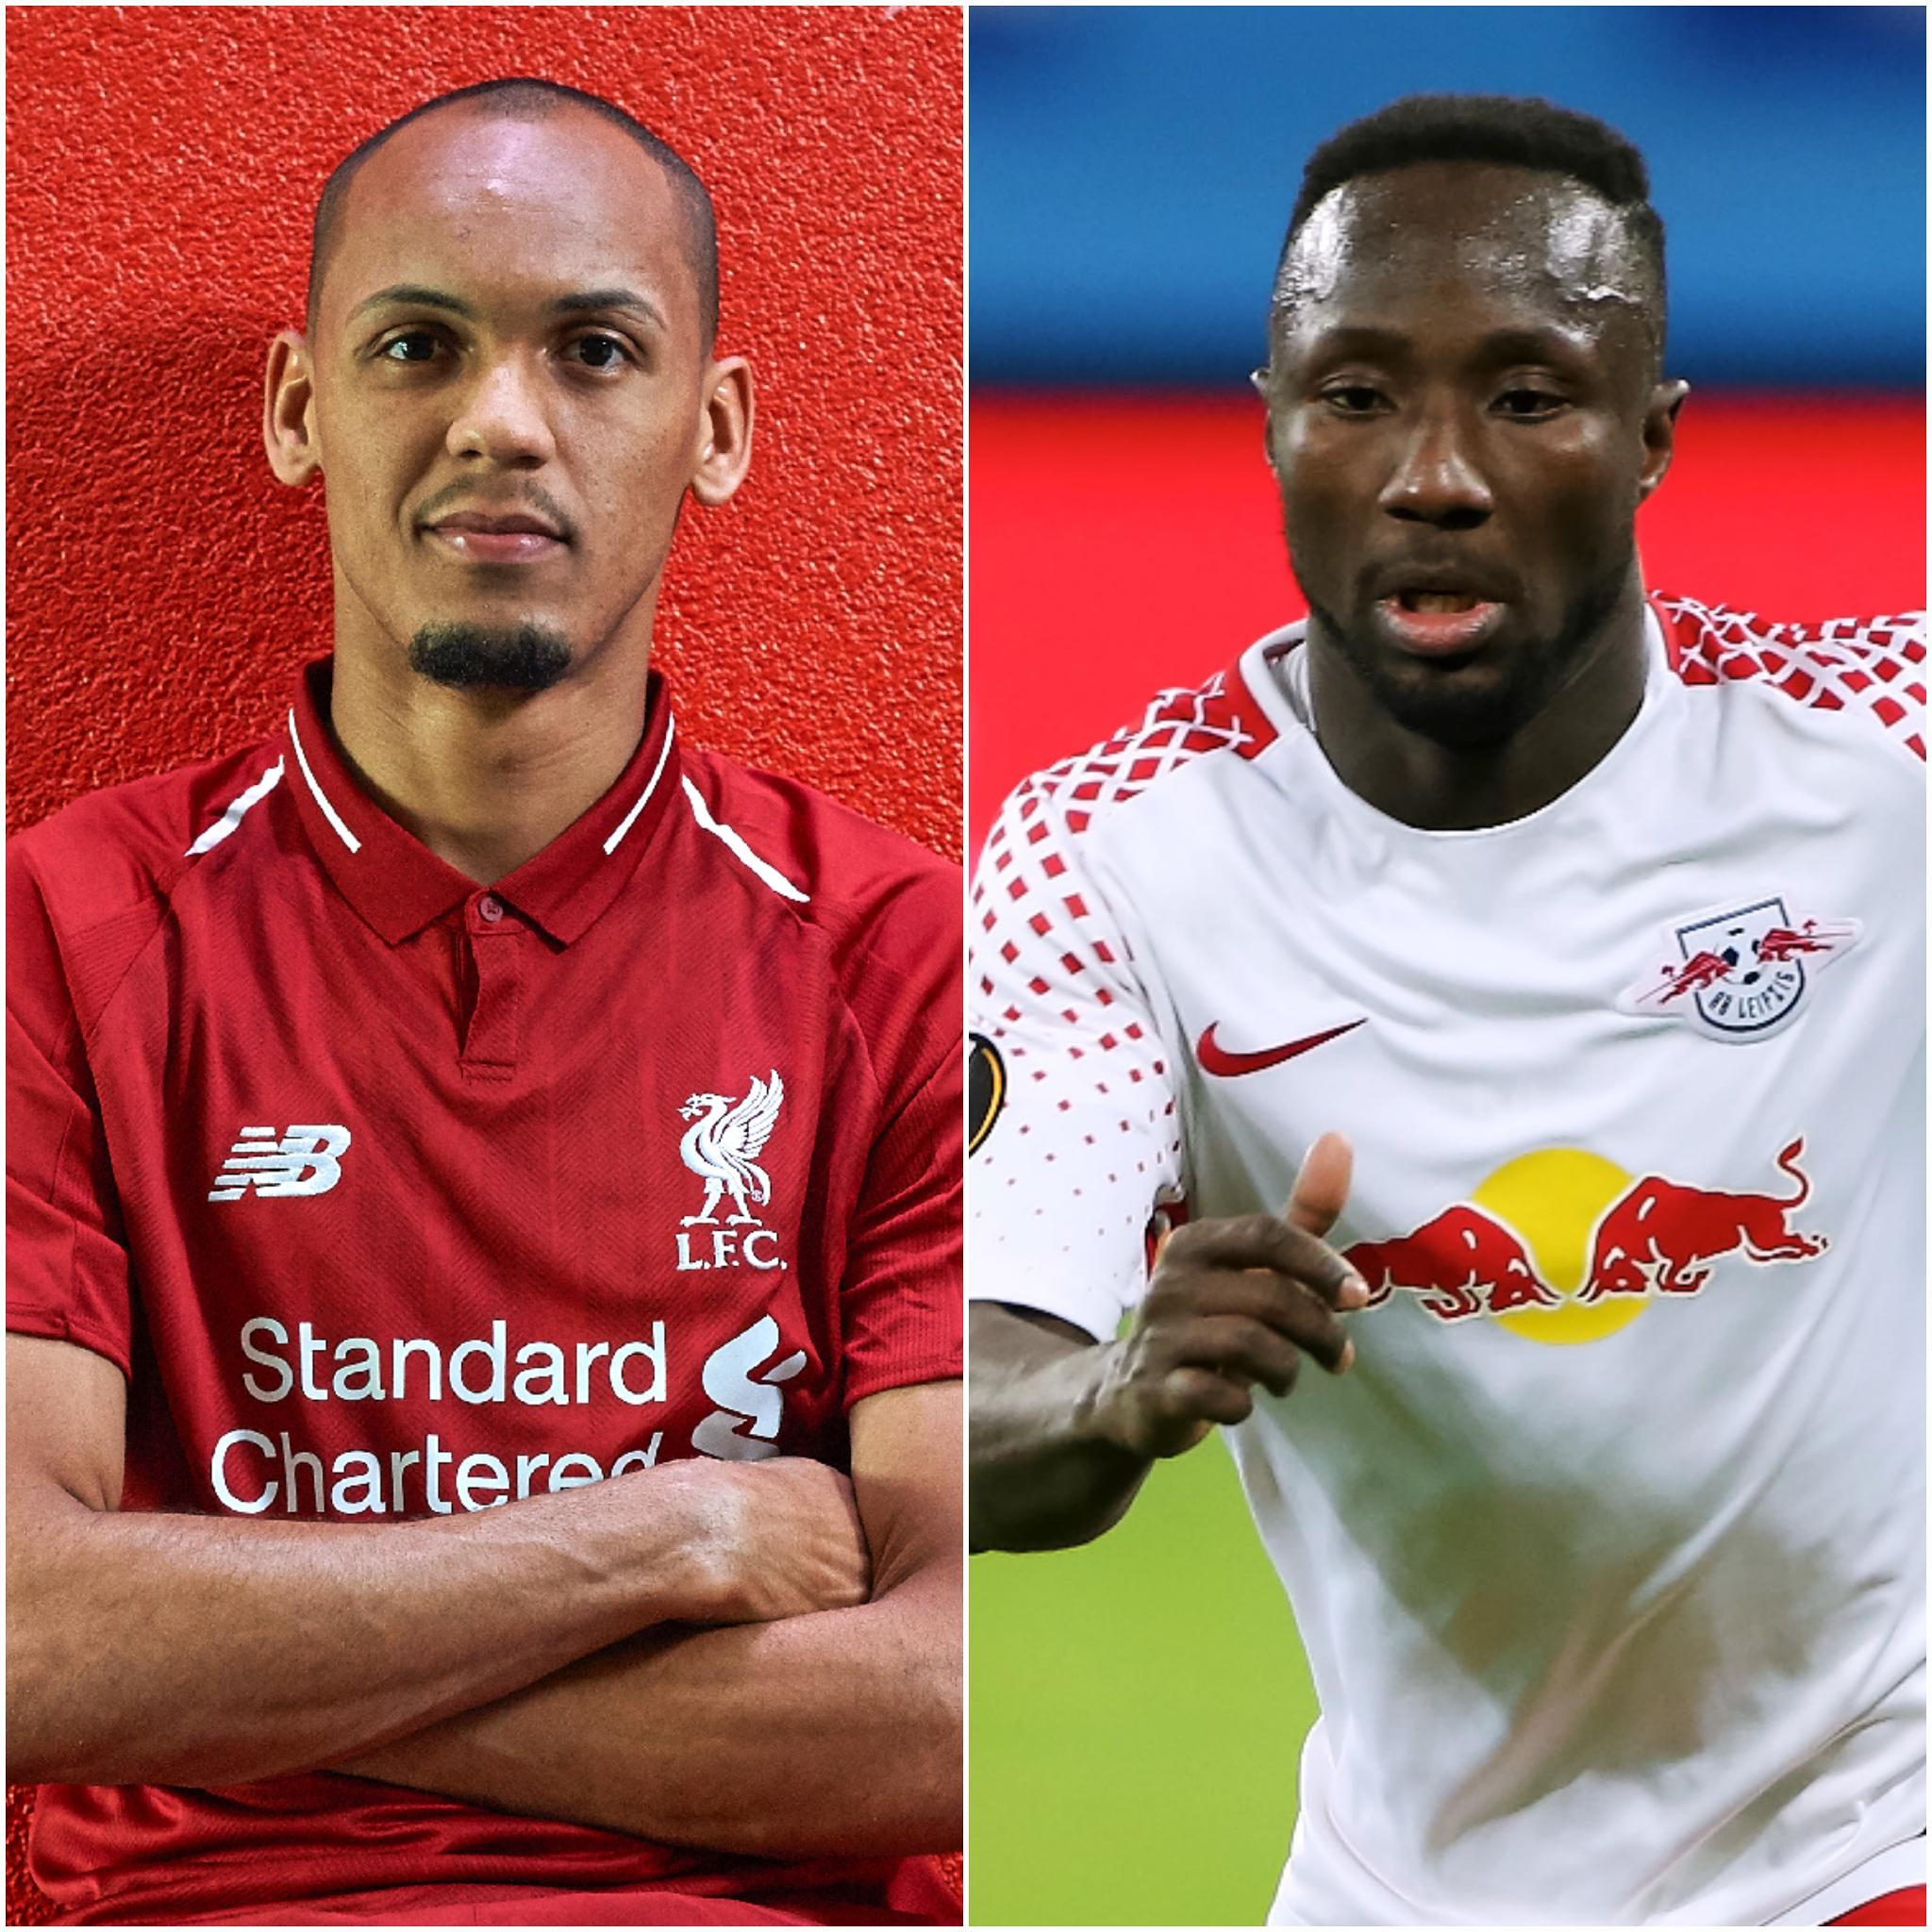 Fabinho & Keita  Box-to-box midfielders, but who will adapt to #PL life the quickest?   ➡️ https://t.co/QBcKLKMSvq https://t.co/0I0TbZkogg